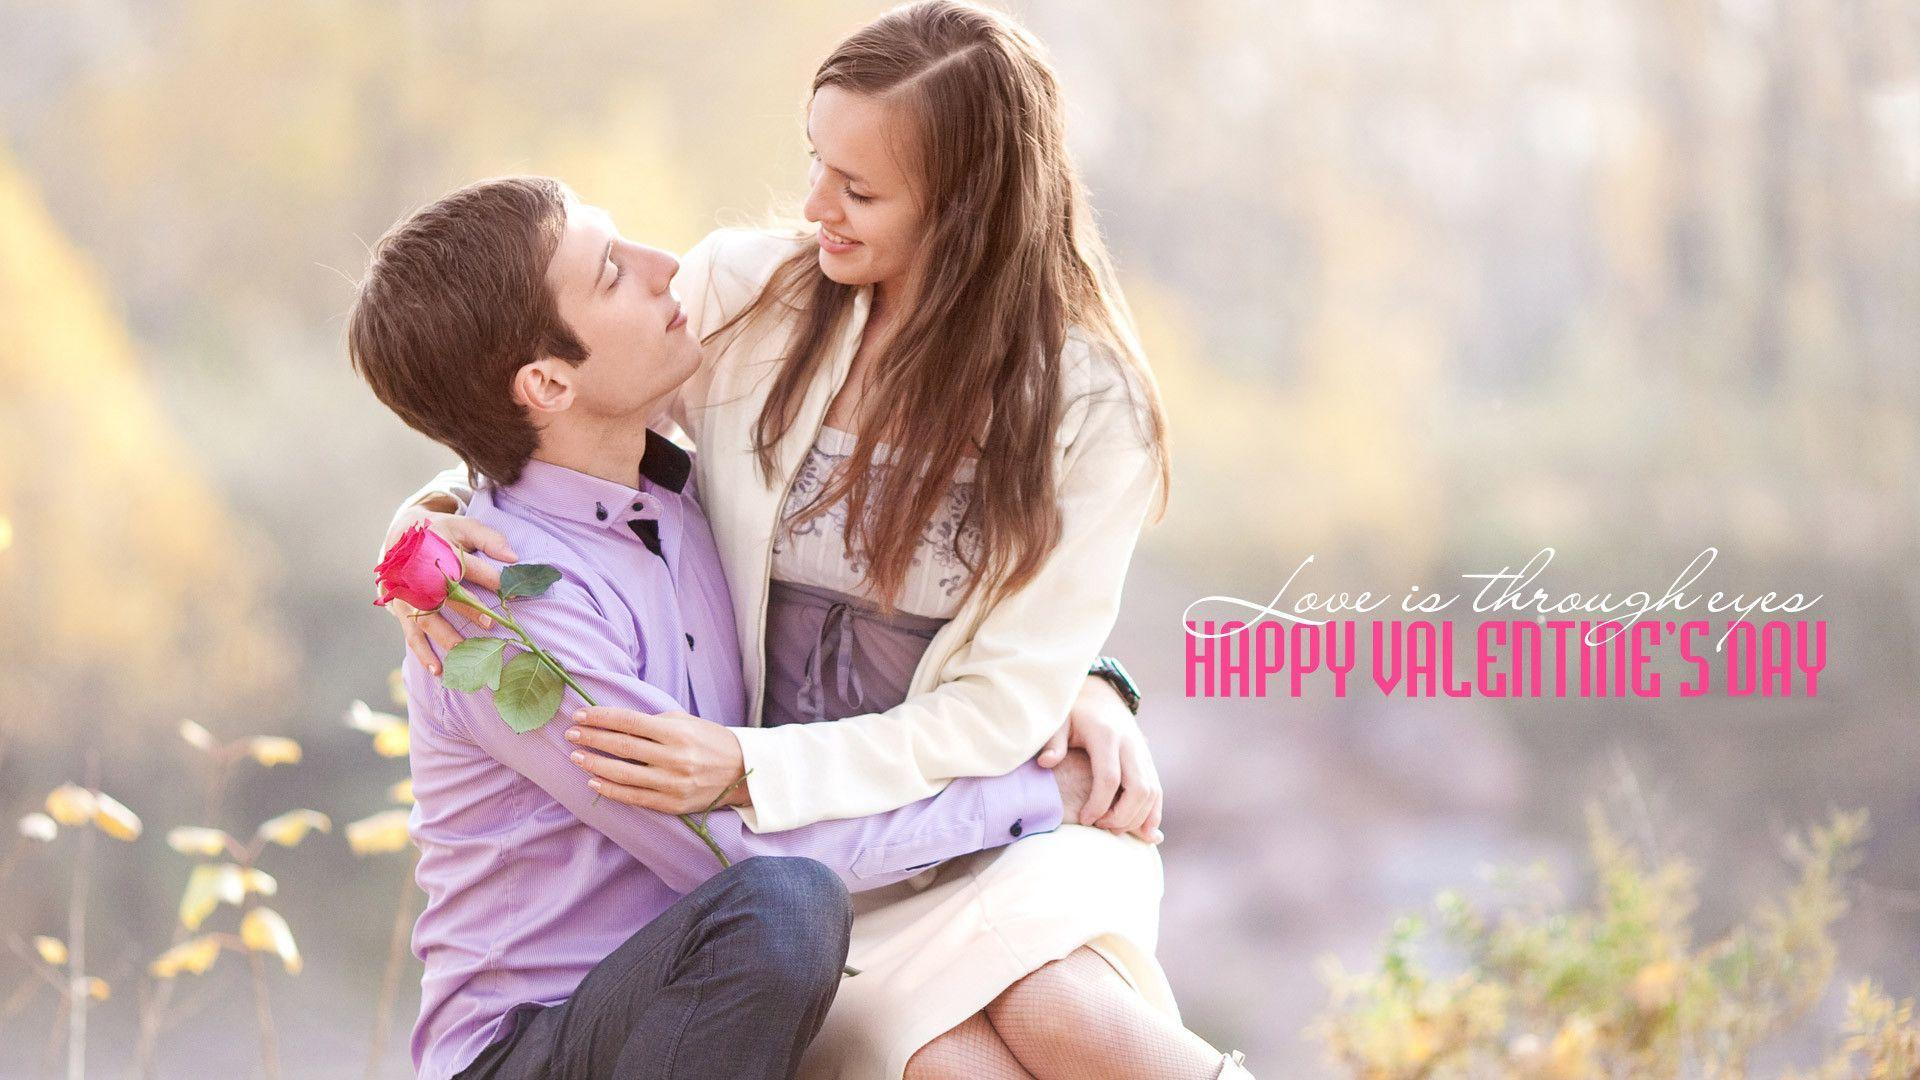 Beautiful Love couple Hd Wallpaper : cute couple Backgrounds - Wallpaper cave